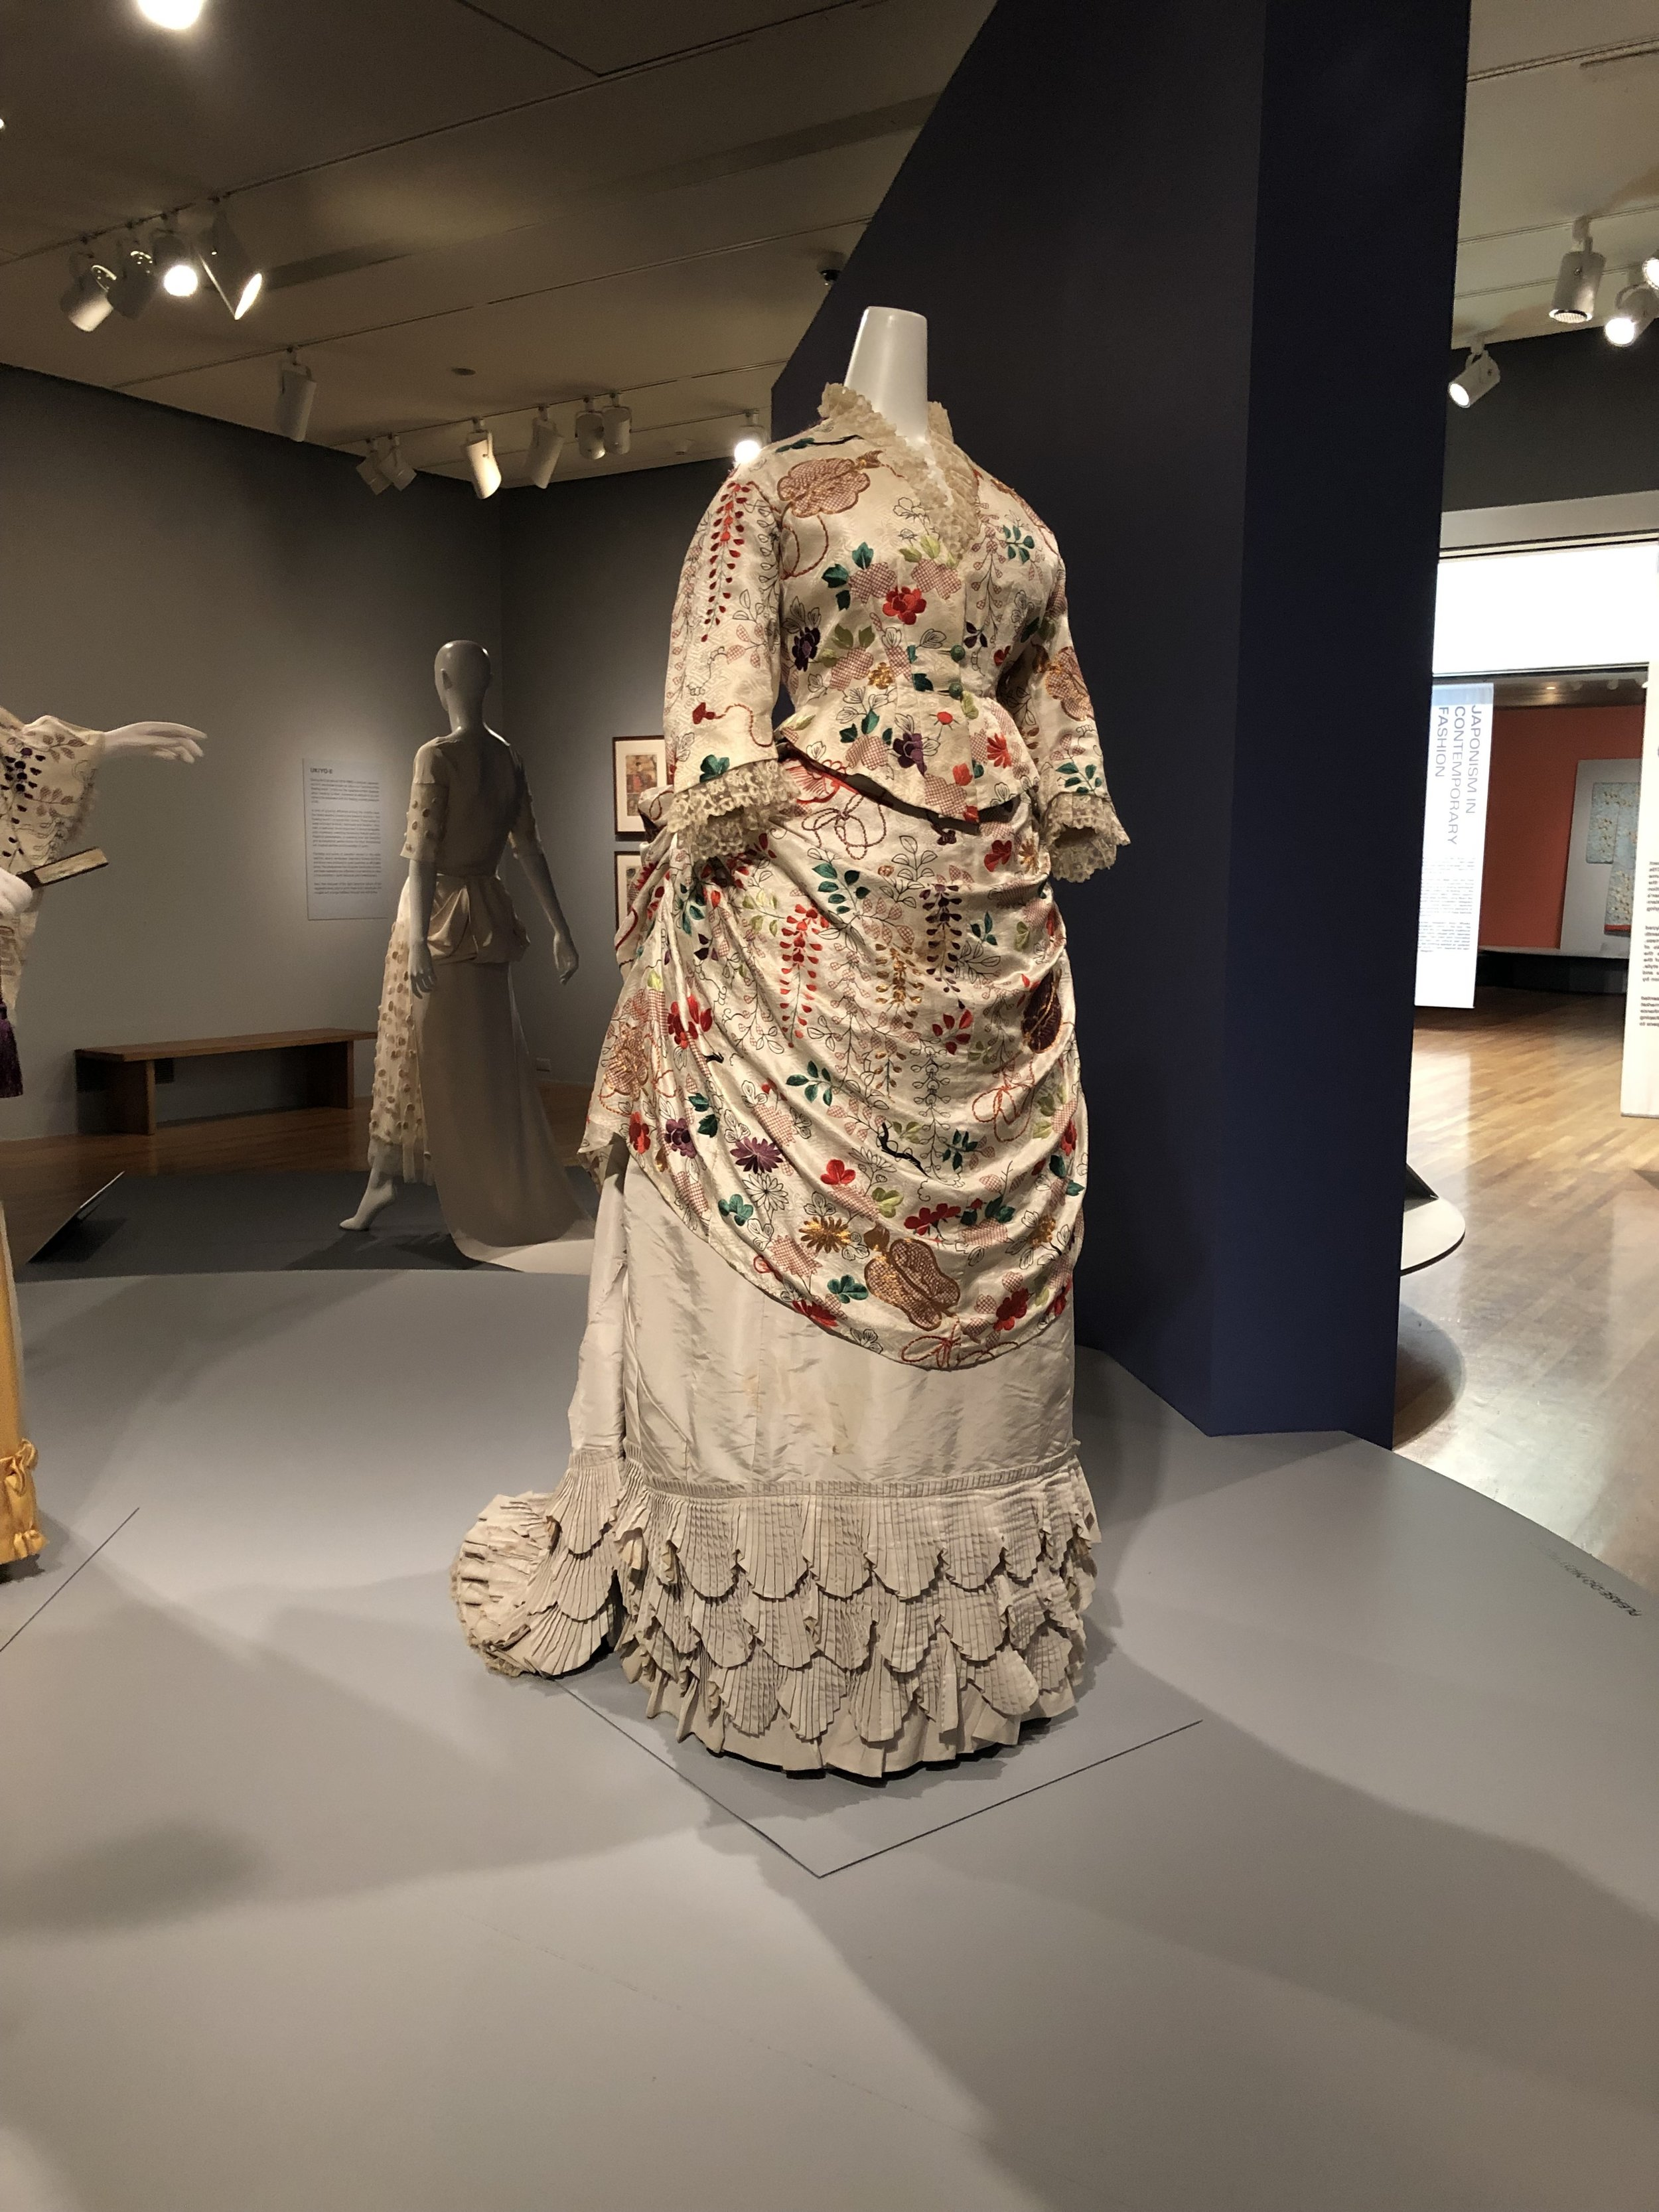 Misses Turner Court Dress Makers,  Dress: Bodice and Overskirt , 1876-8, silk, metallic thread.  Photo Courtesy of Emilie King